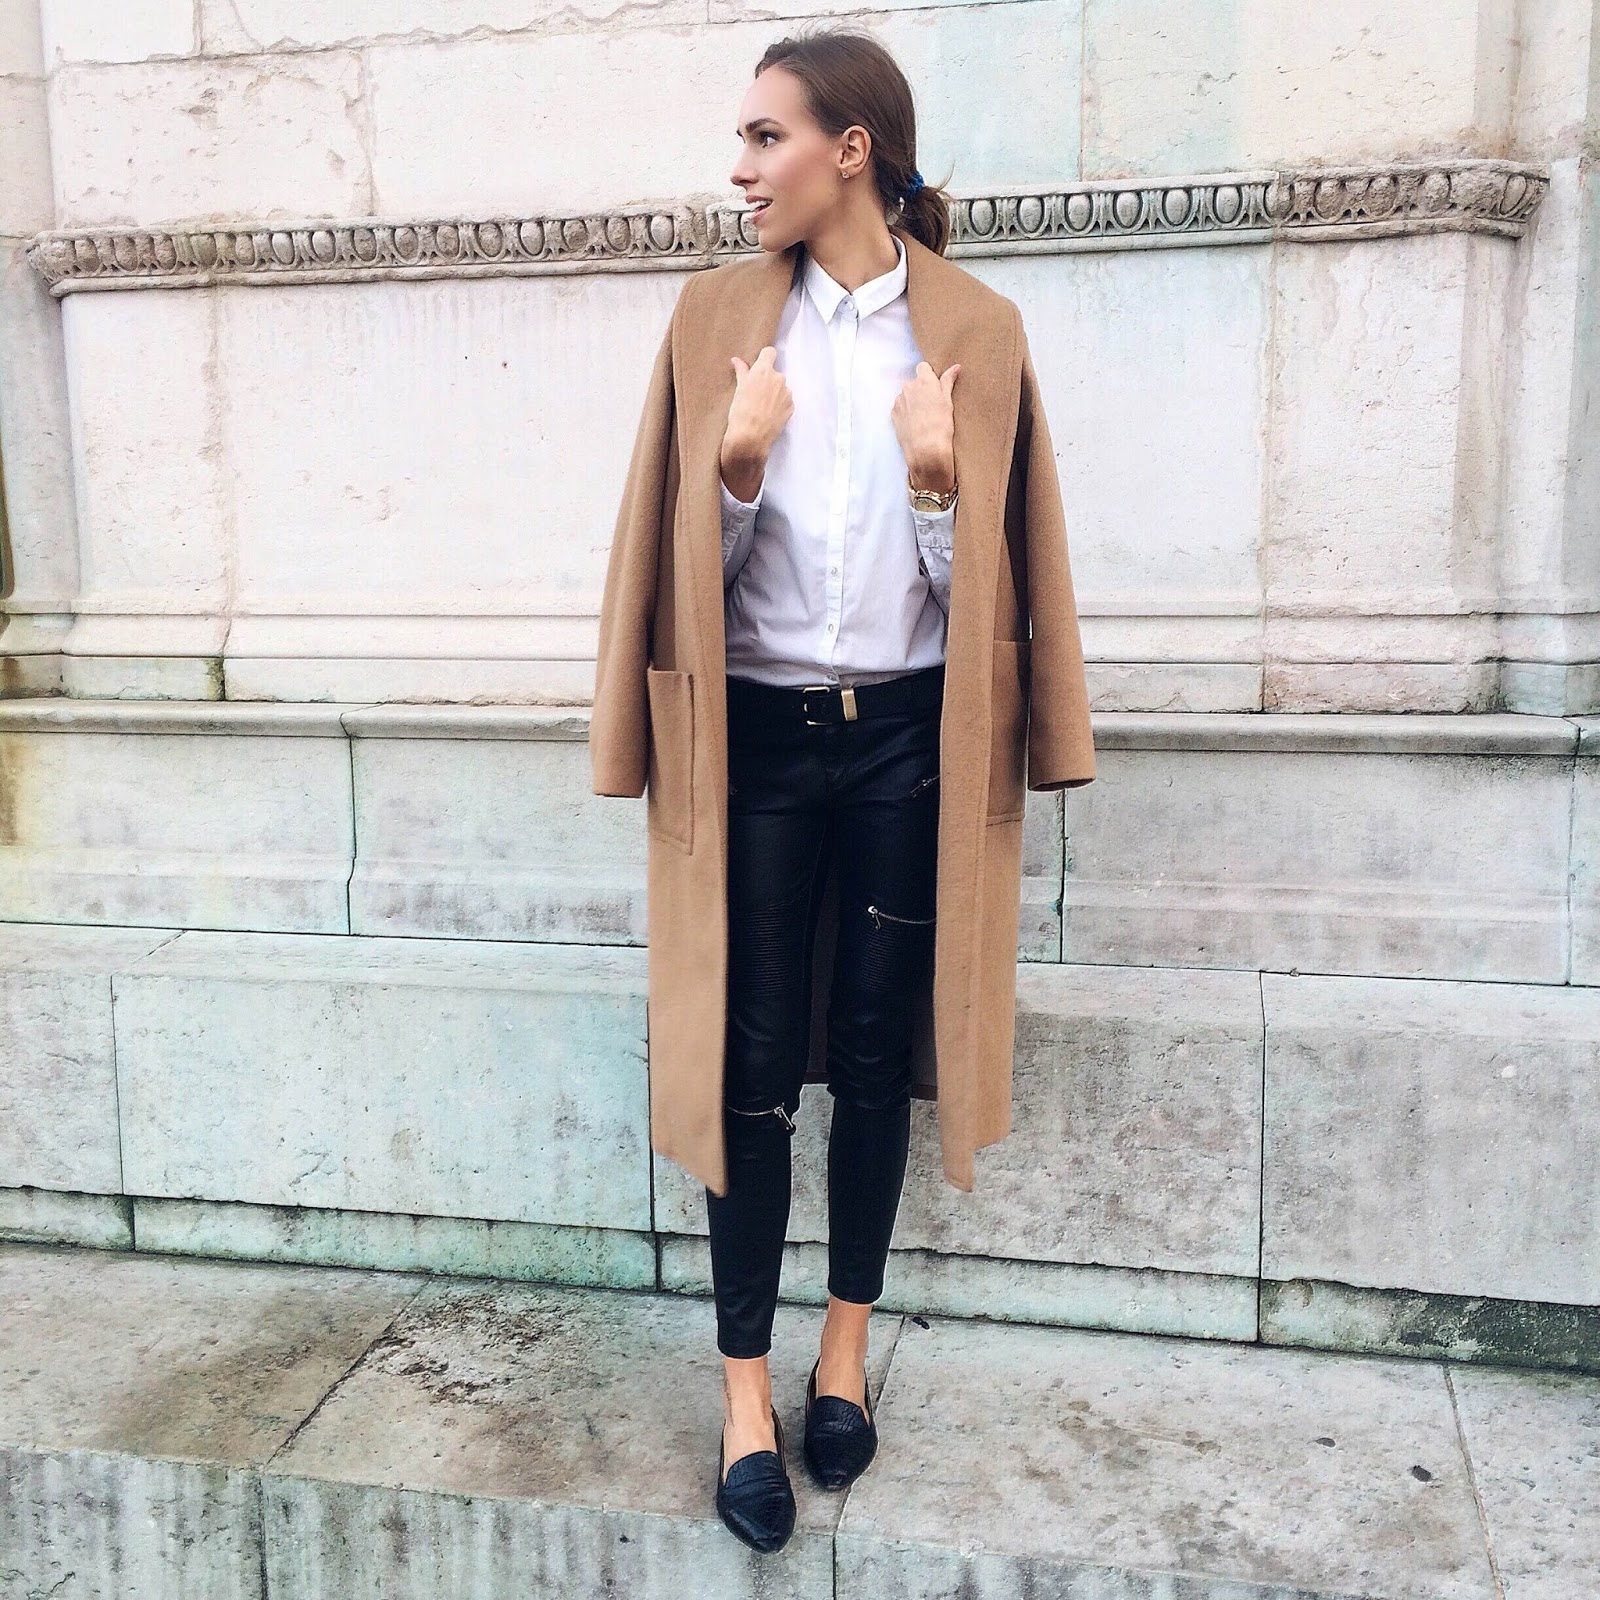 kristjaana mere camel coat white button down shirt leather pants pointed flats minimal winter outfit